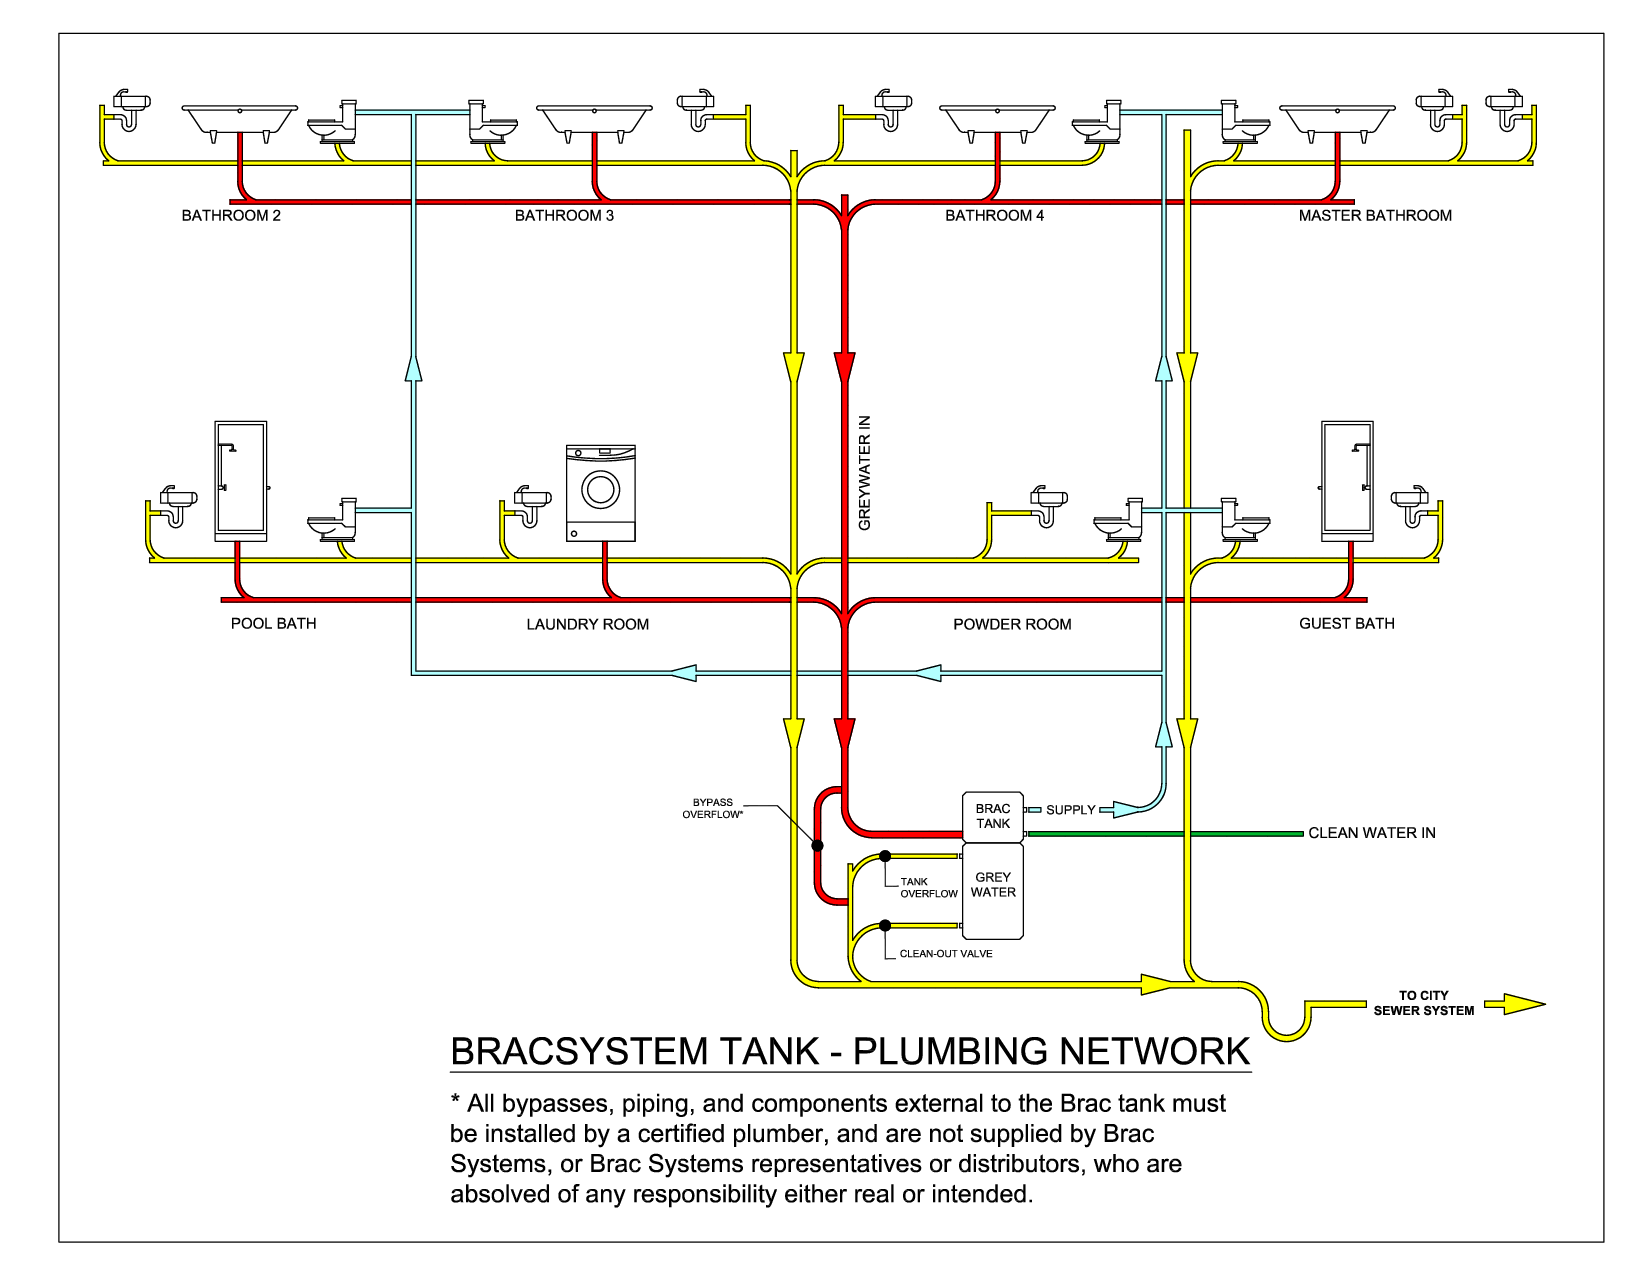 Mobile Home Plumbing Systems | Plumbing Network Diagram.pdf ... on 1989 nashua mobile home, 1989 holiday mobile home, 1989 indian mobile home,